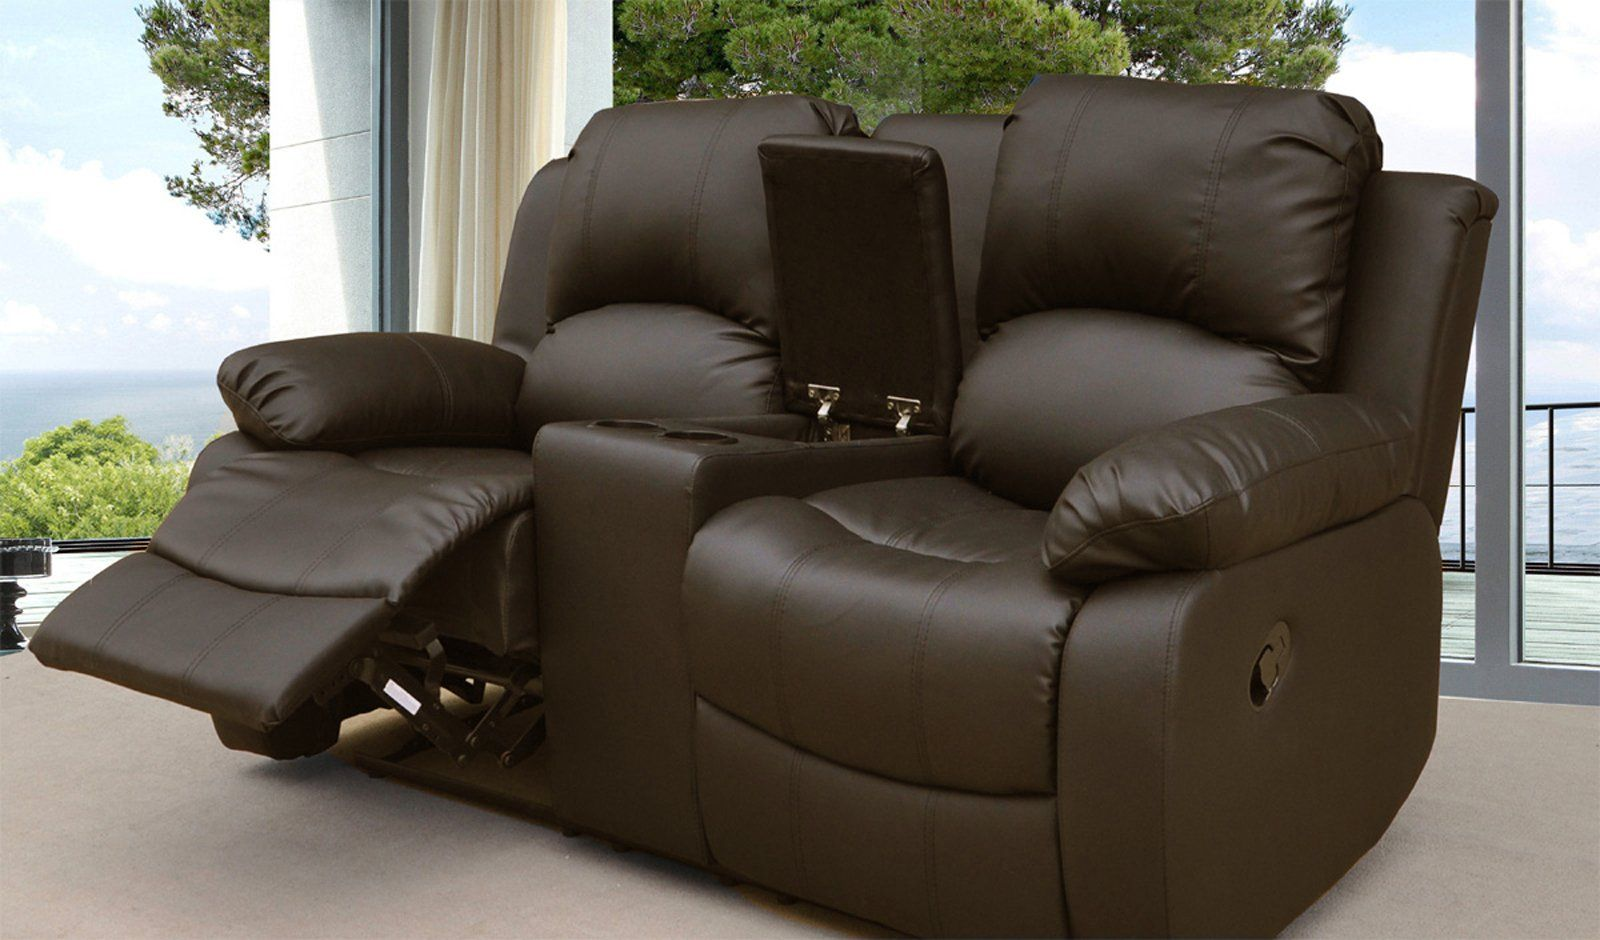 Sofas Online Valencia Lovesofas Valencia 2 Seater Leather Recliner Sofa With Drinks